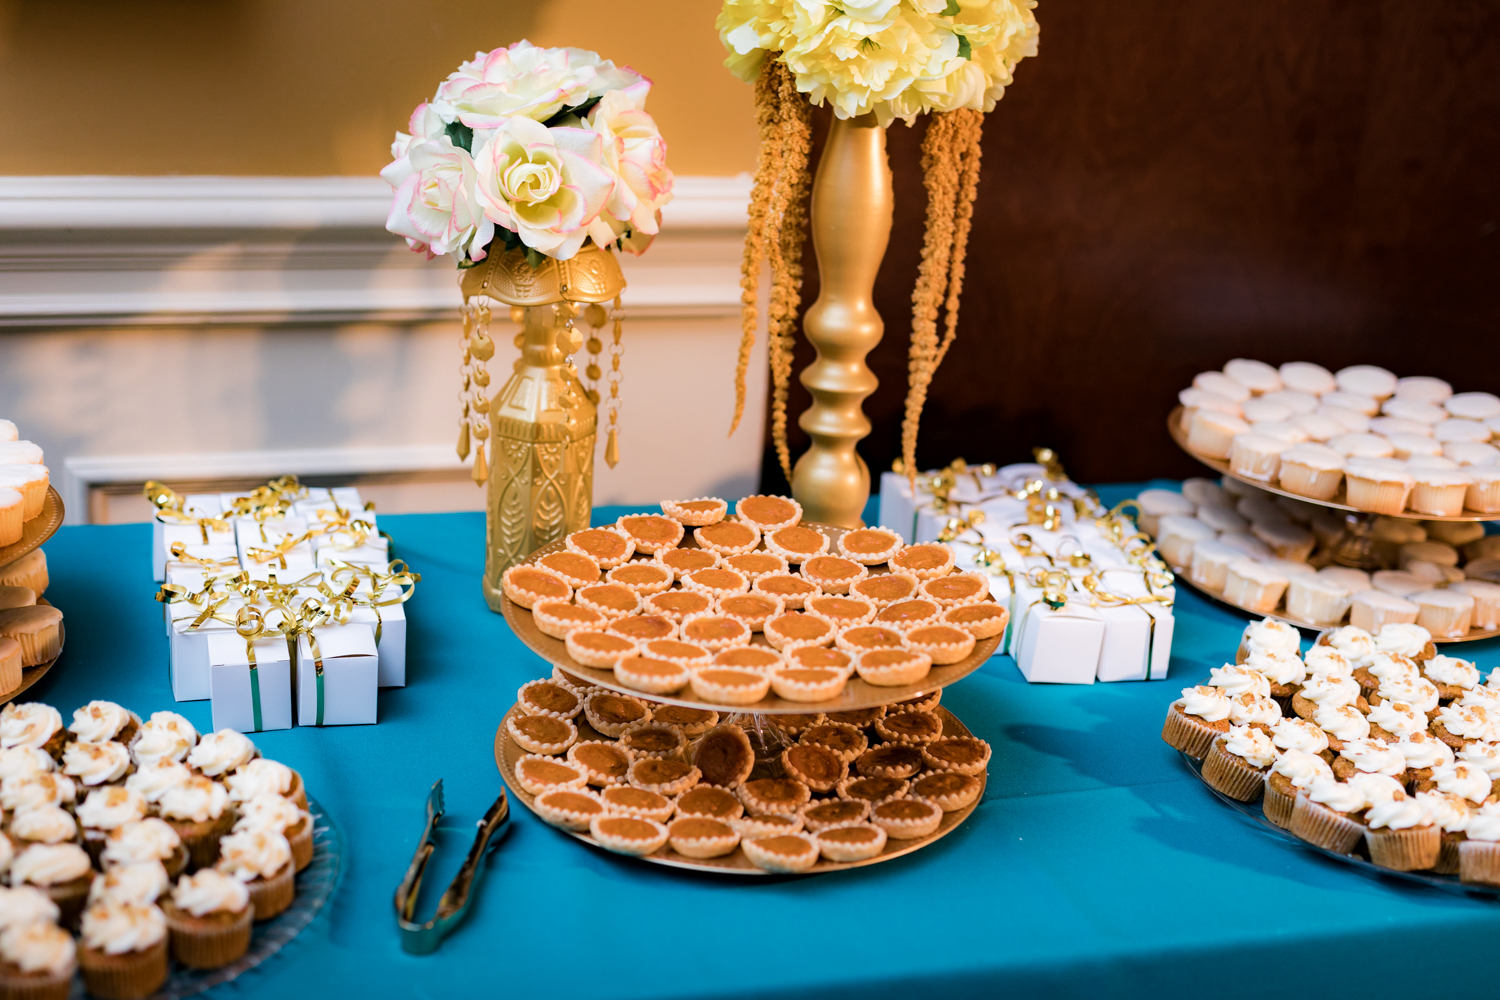 Dessert table for a wedding reception.